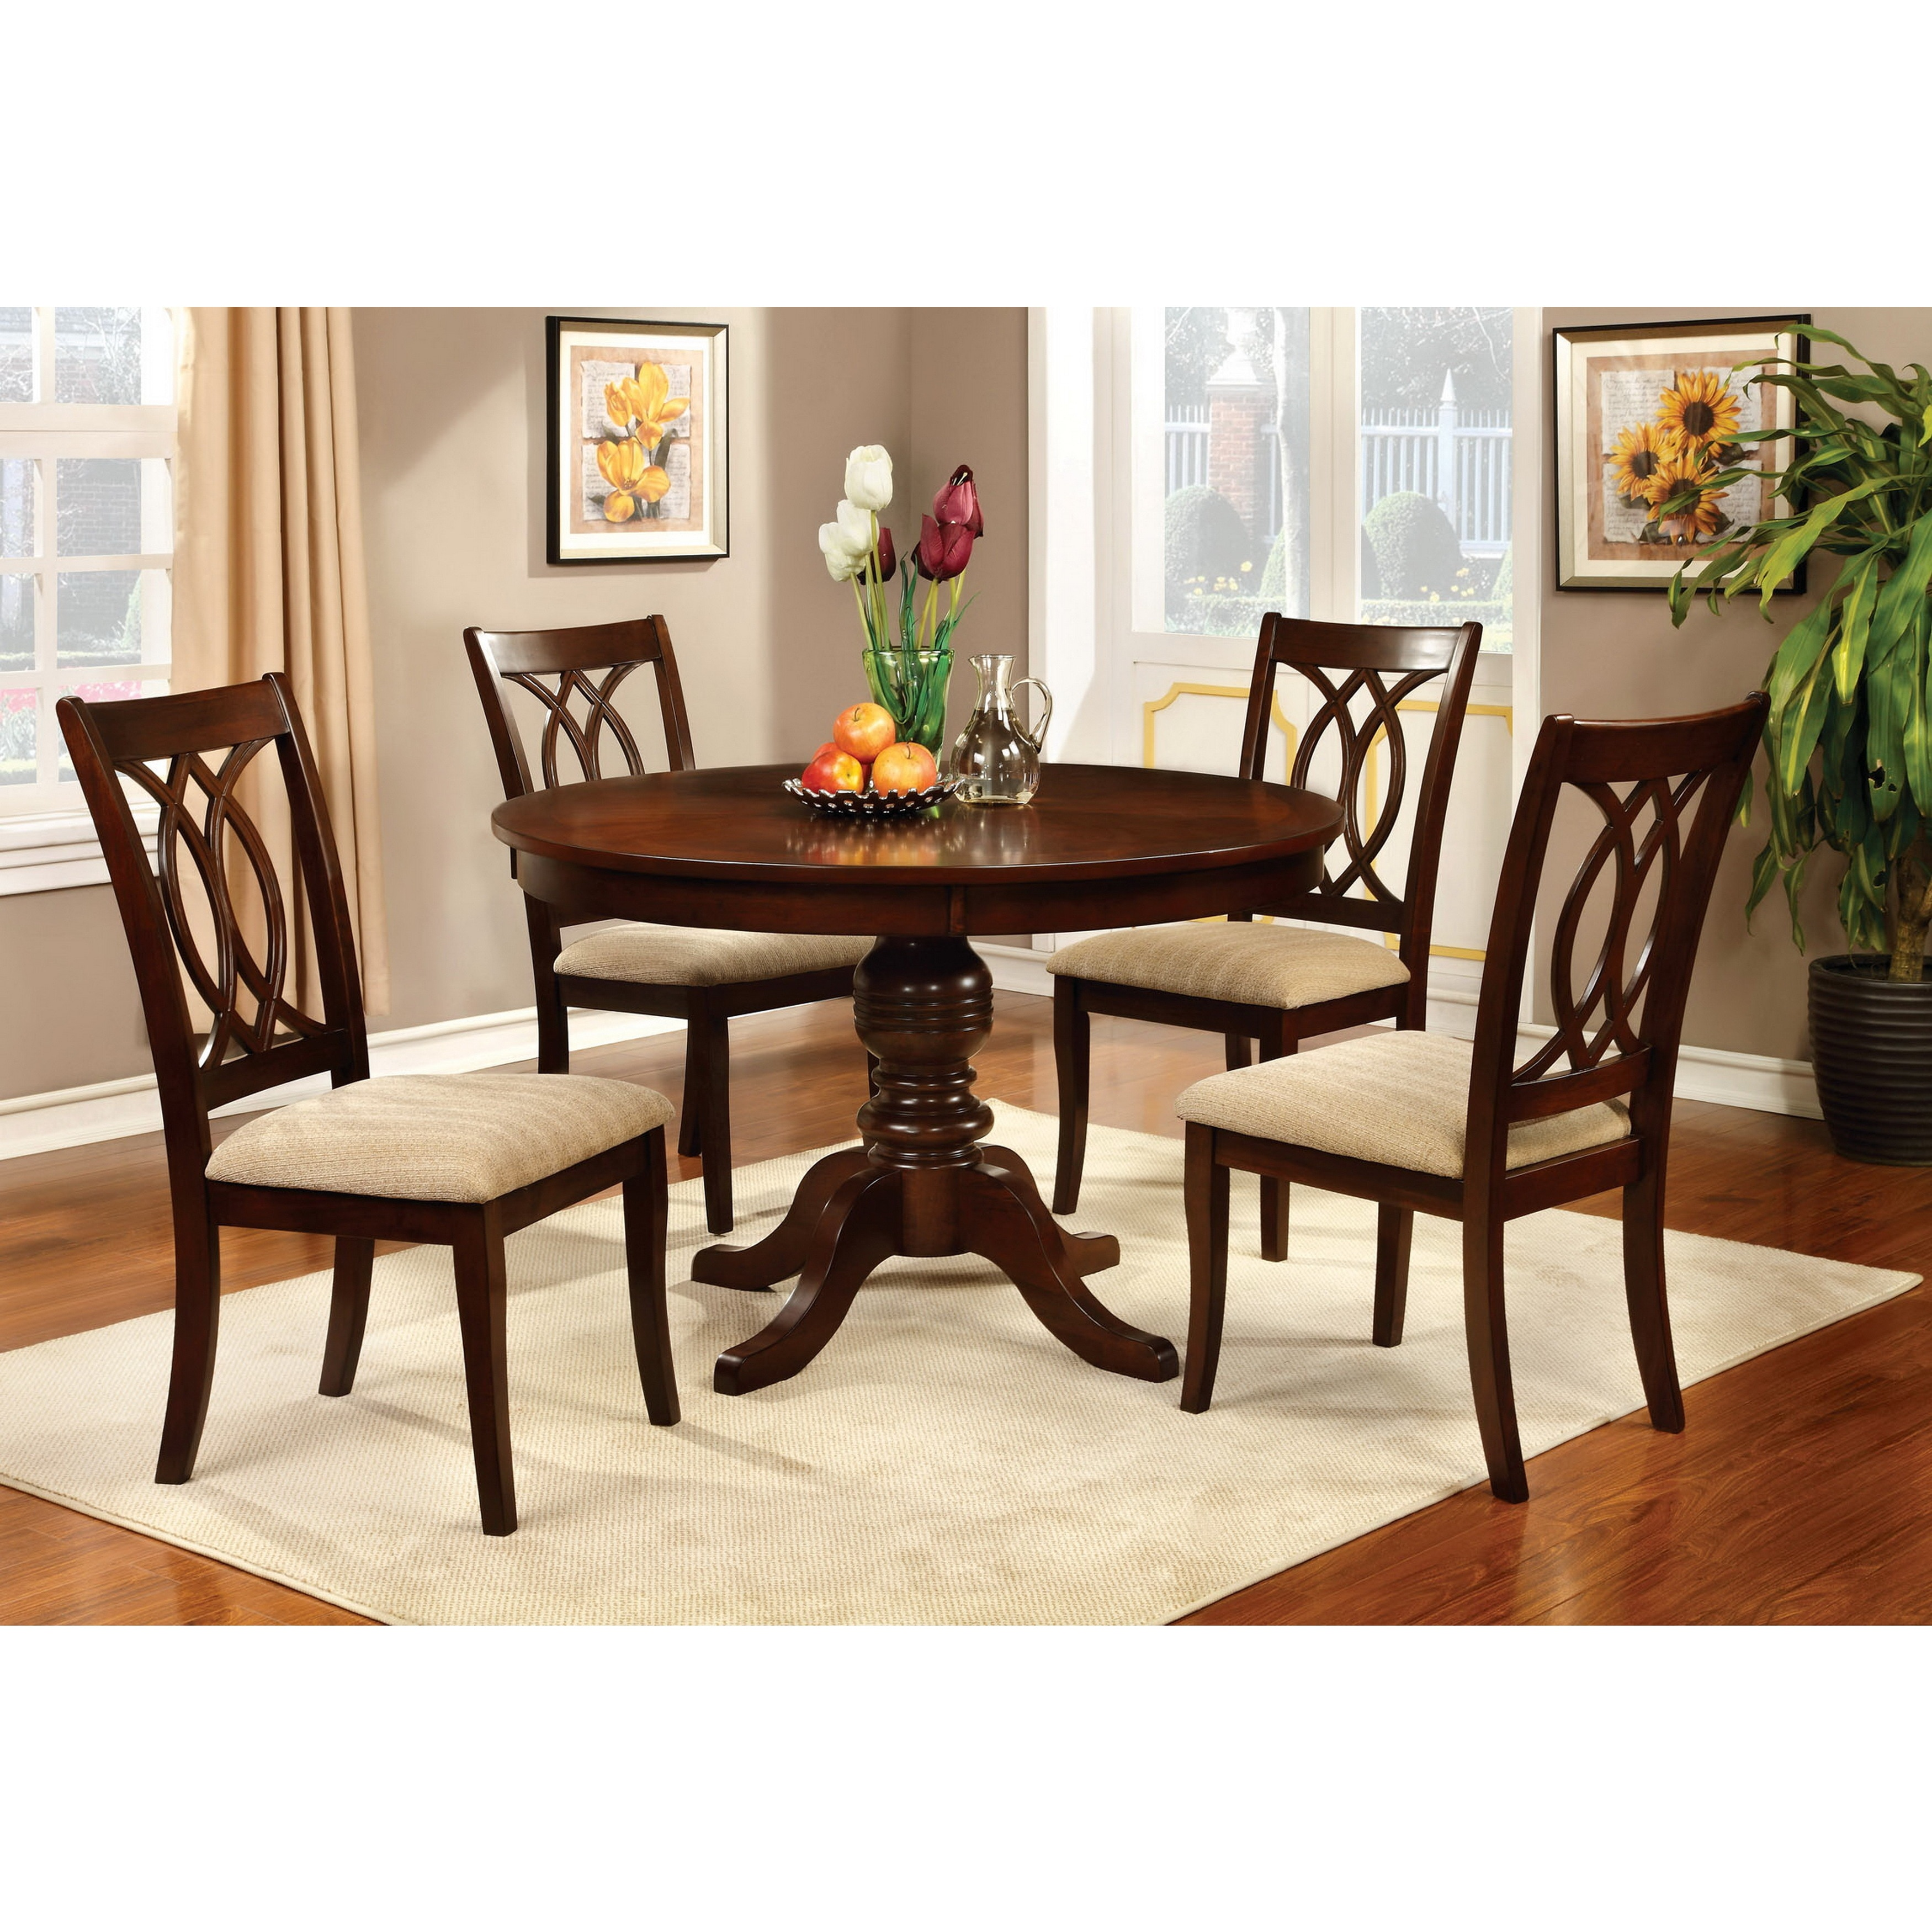 Shop furniture of america cerille elegant brown cherry dining chairs set of 2 on sale free shipping today overstock com 8904447